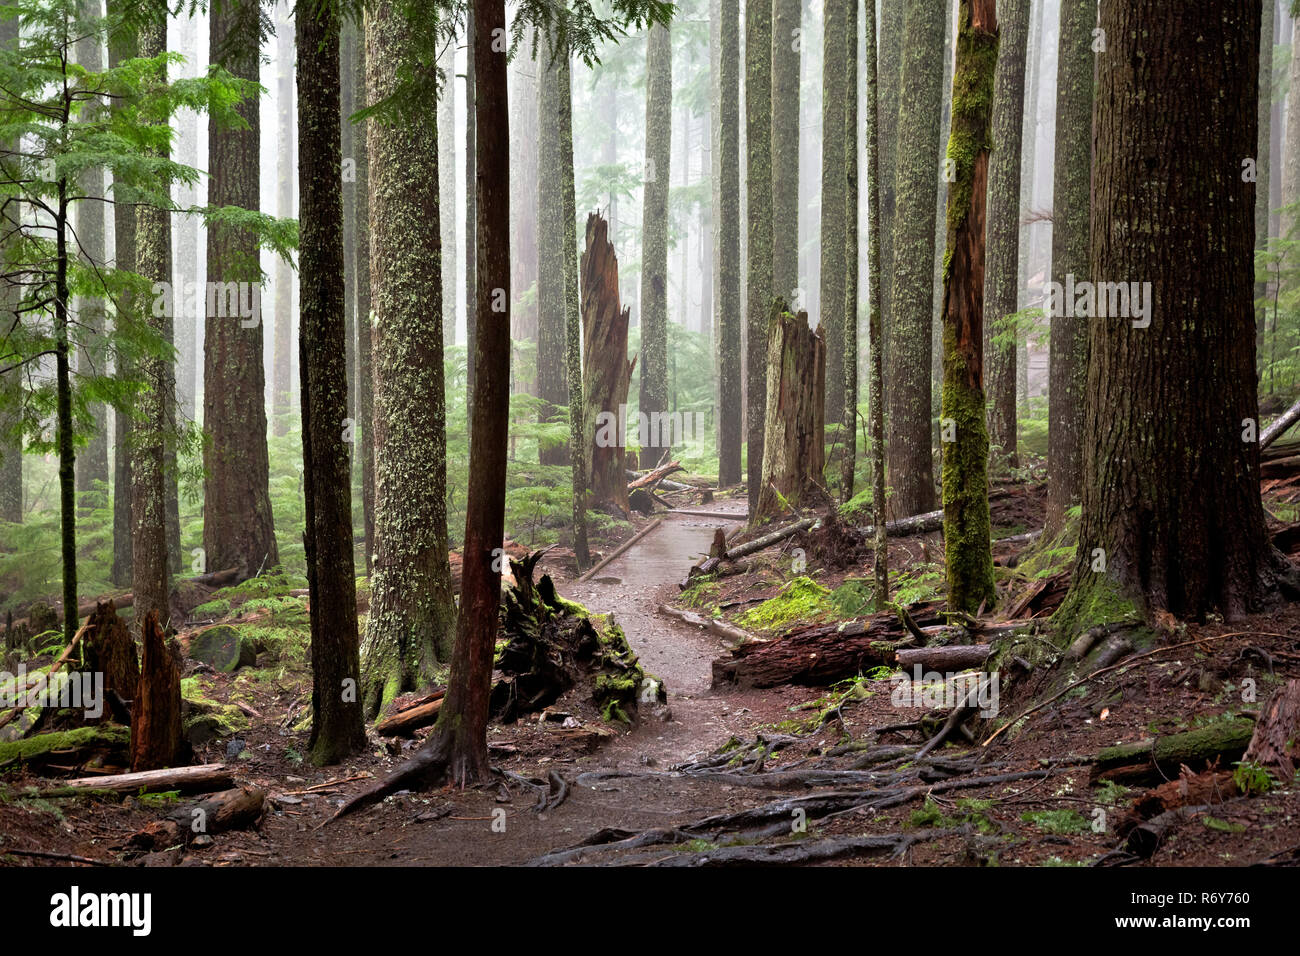 WA15448-00...WASHINGTON - Damp and foggy morning in the fog shrouded forest on the Mount Si Trail near North Bend. - Stock Image